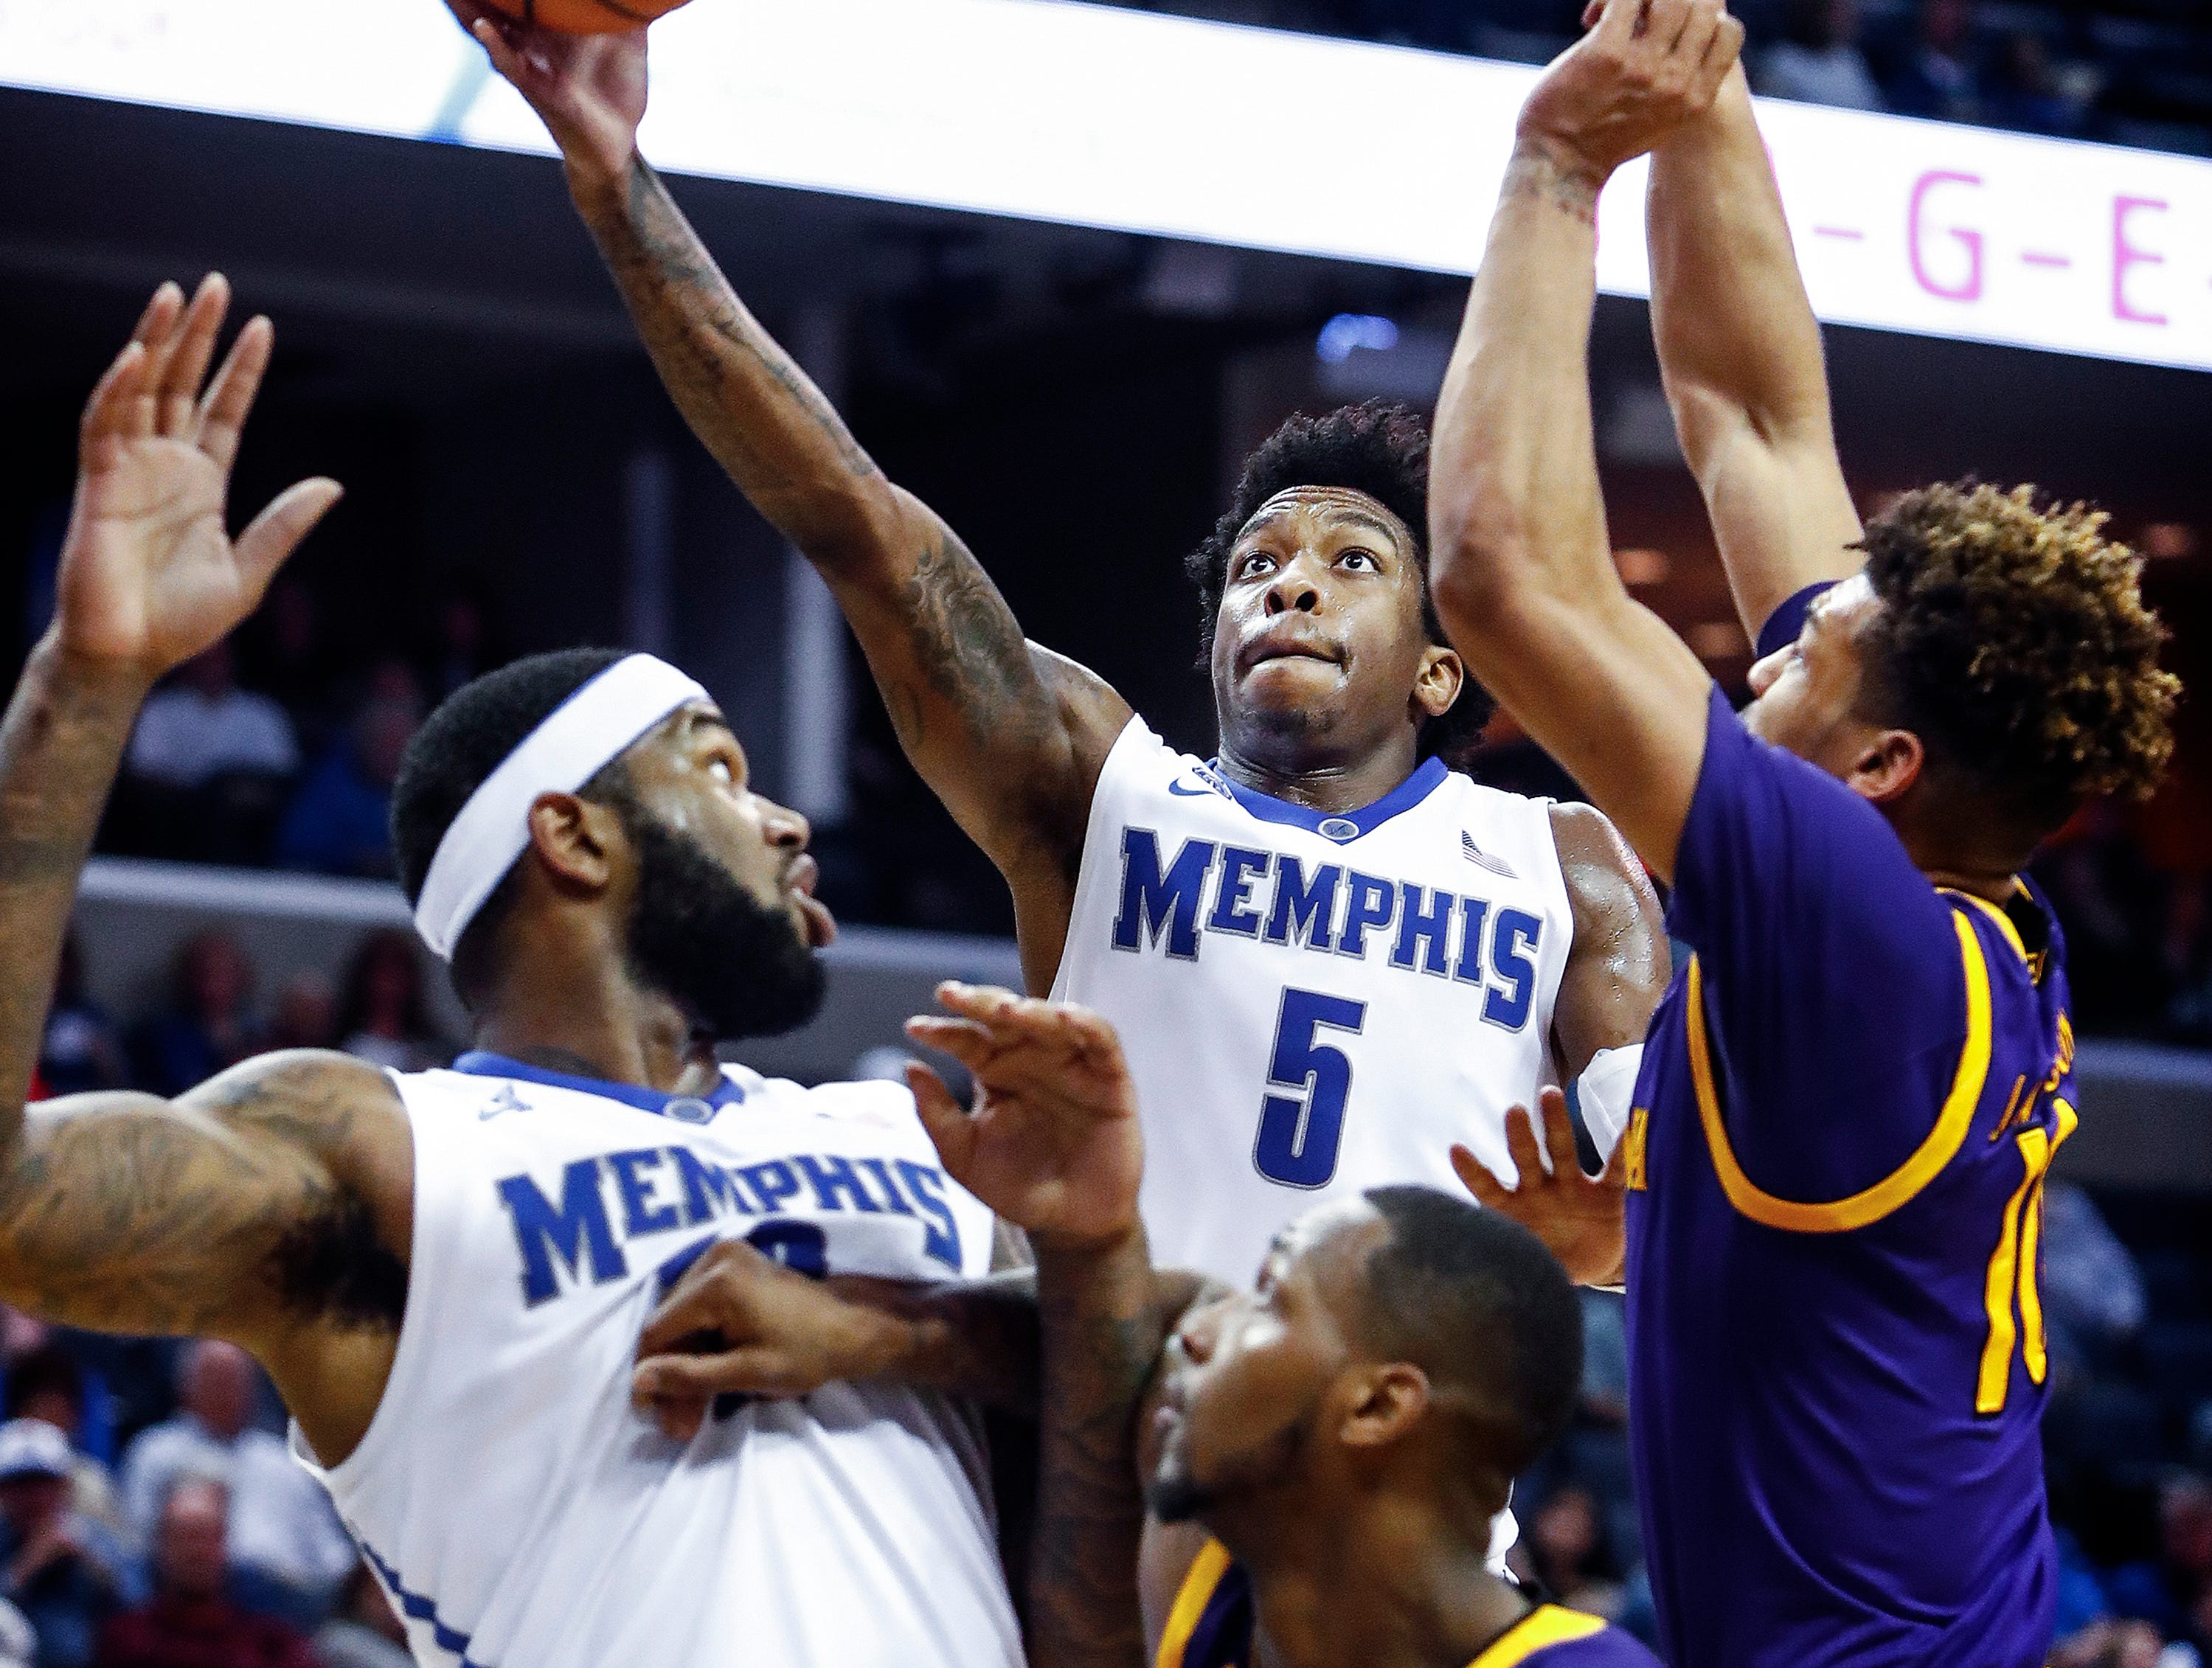 Memphis guard Kareem Brewton Jr. (top) drives for a layup against the ECU defense during second half action at the FedExForum in Memphis Tenn., Sunday, March 4, 2018.